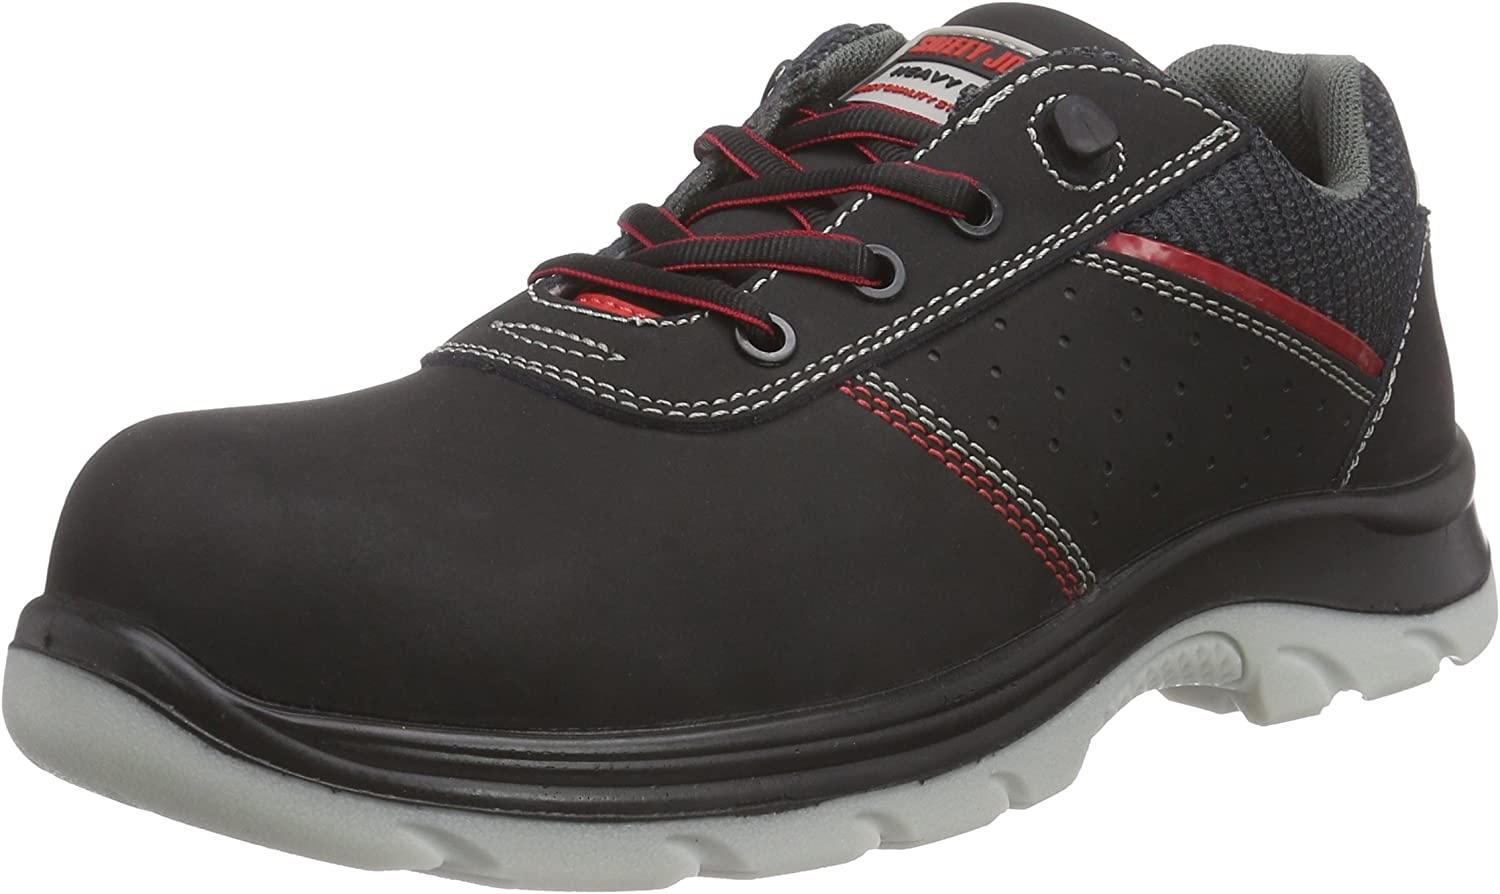 Safety Jogger Vallis, Men's Safety shoes